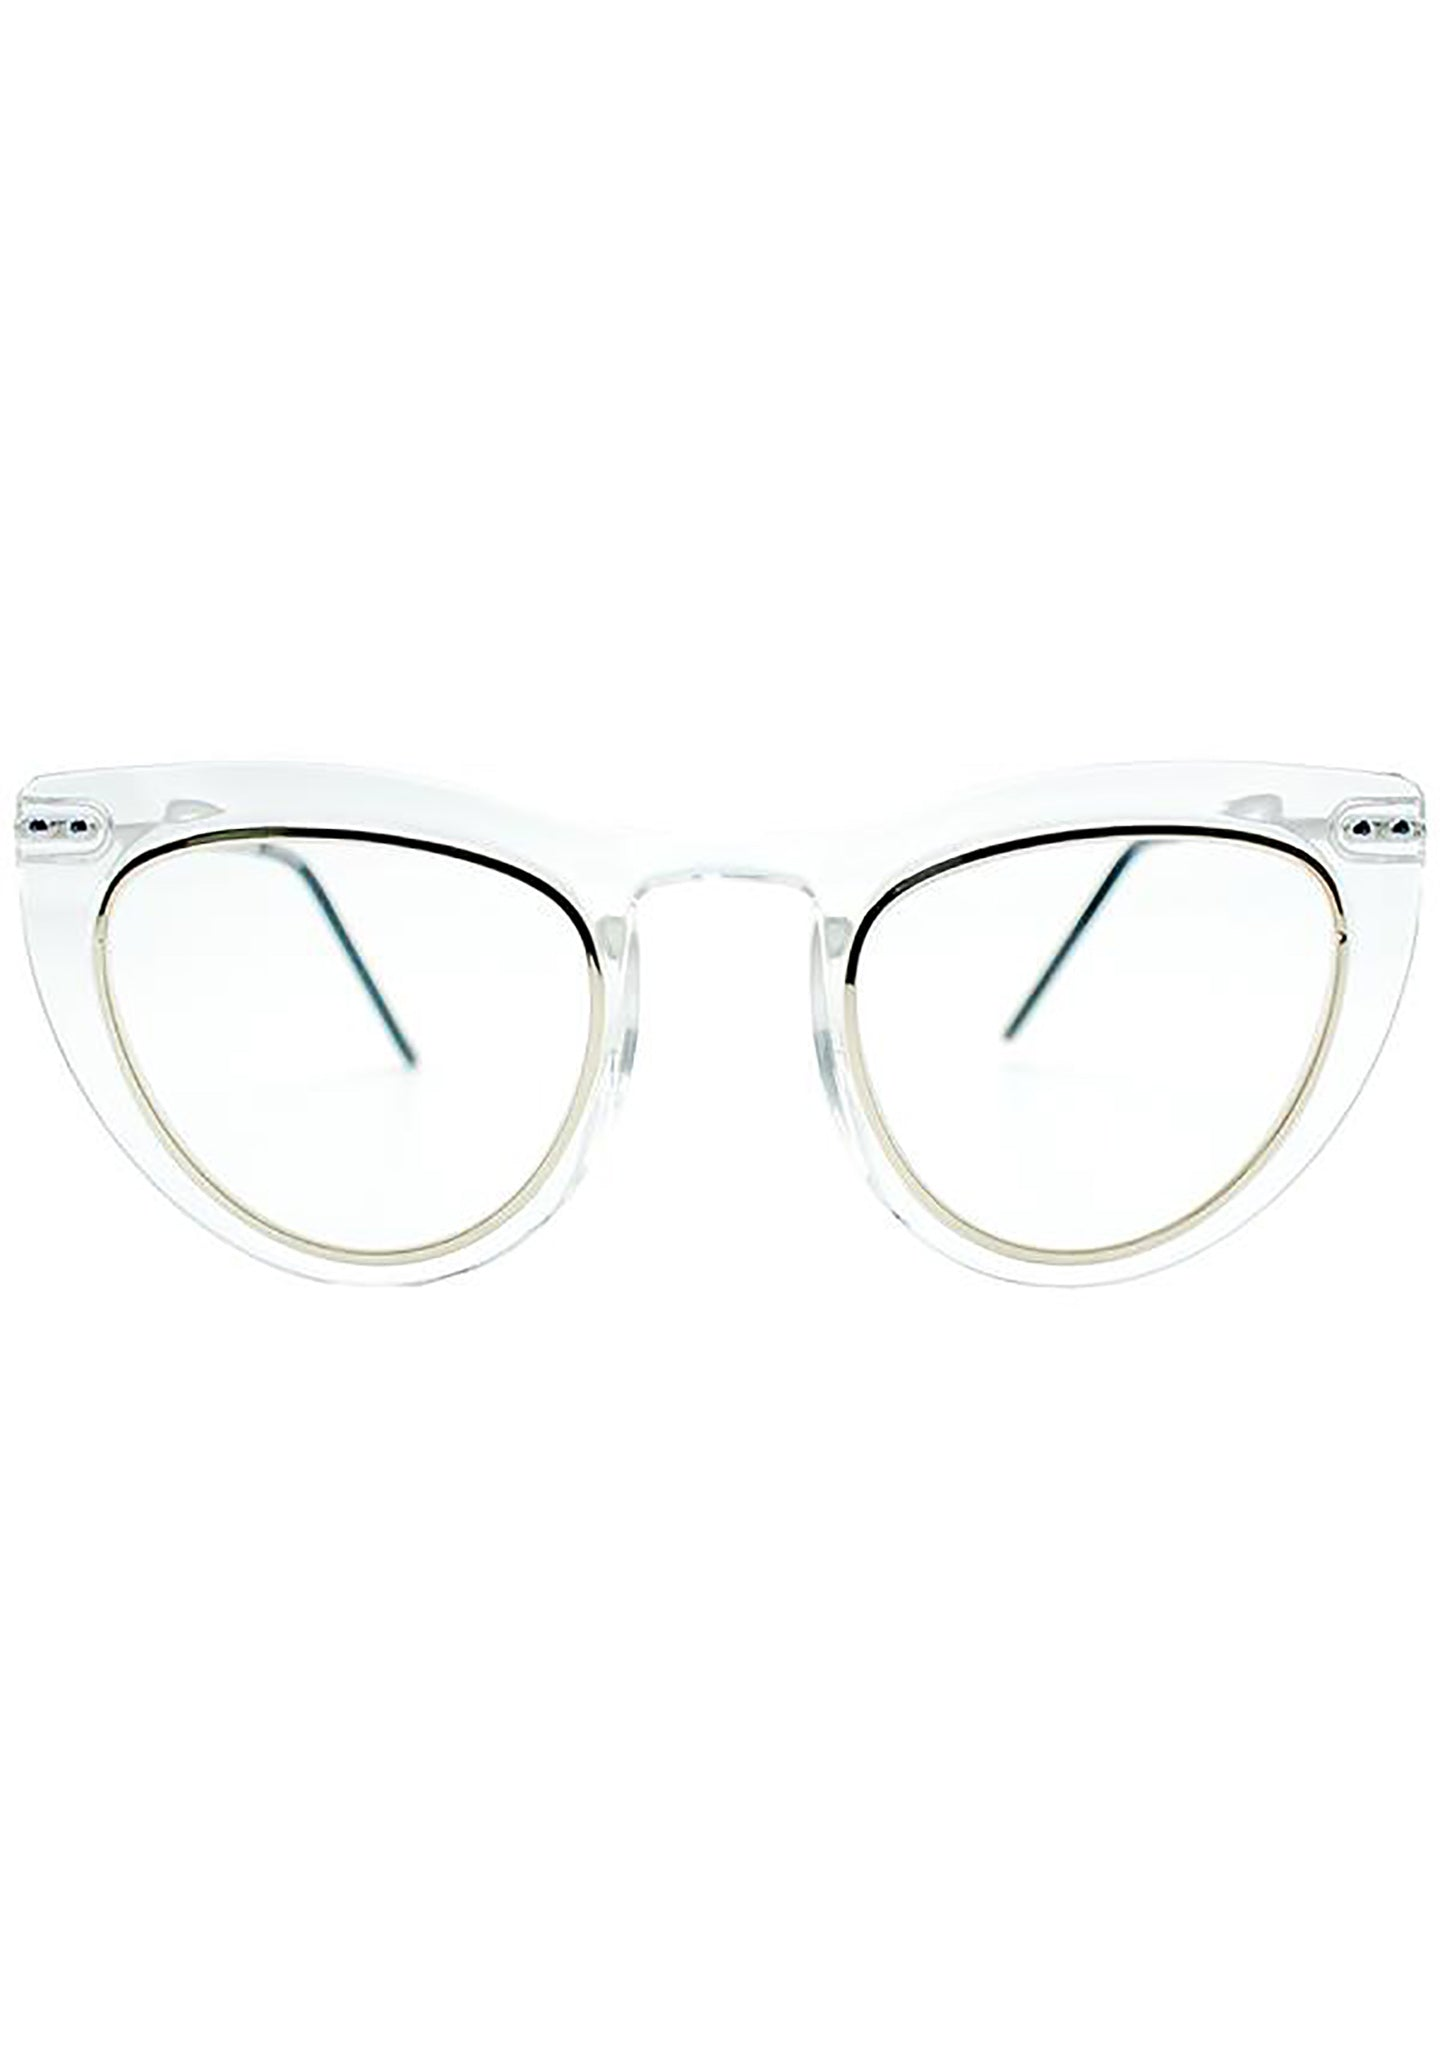 Spitfire Outward Urge Sunglasses in Clear